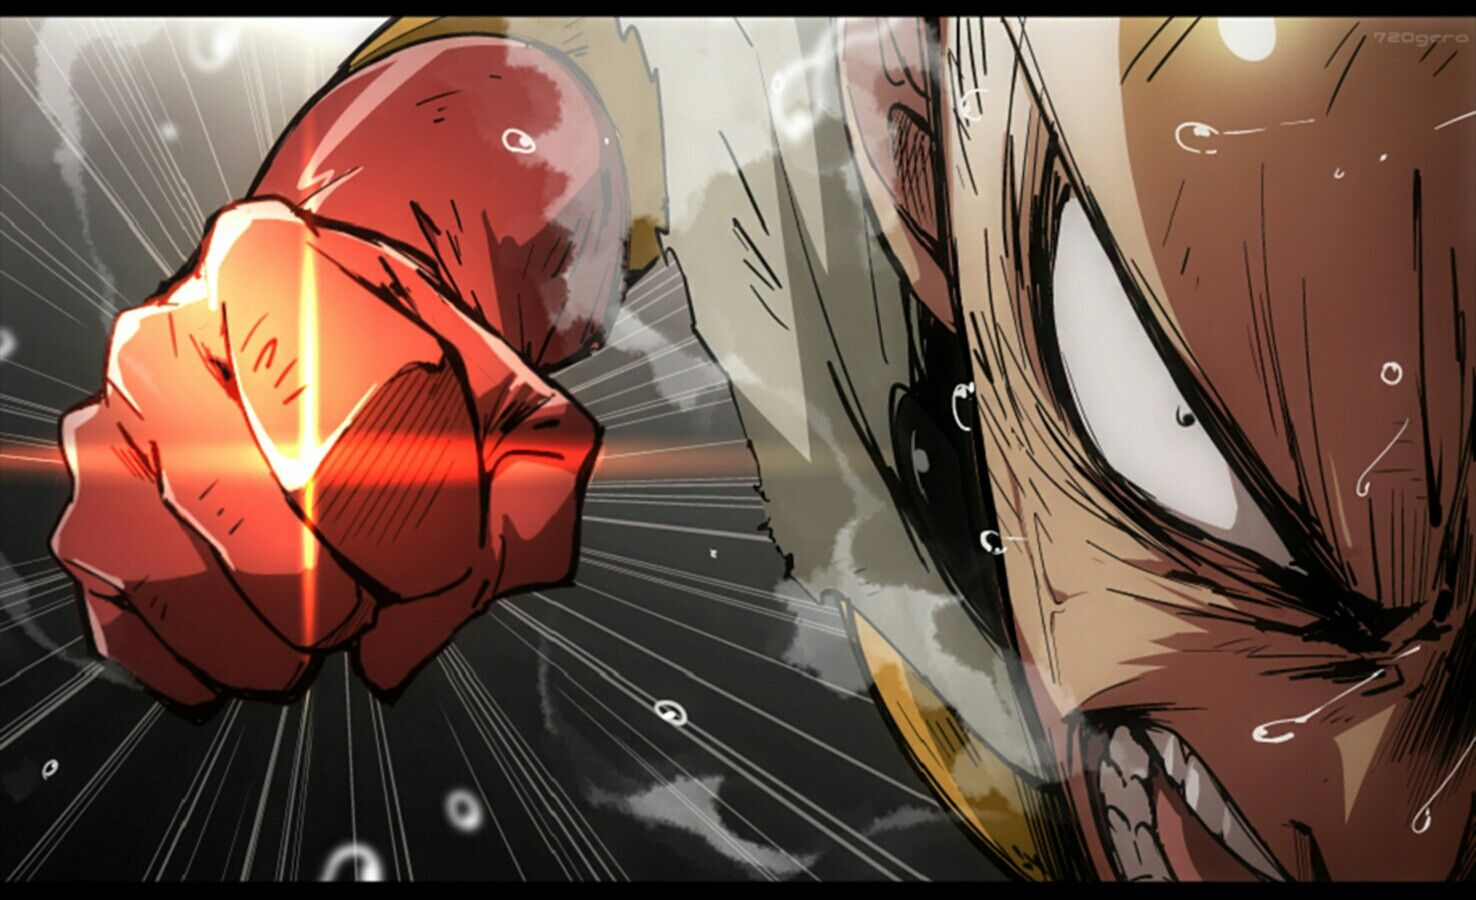 One Punch Man One Punch Man Anime One Punch Man Funny One Punch Man